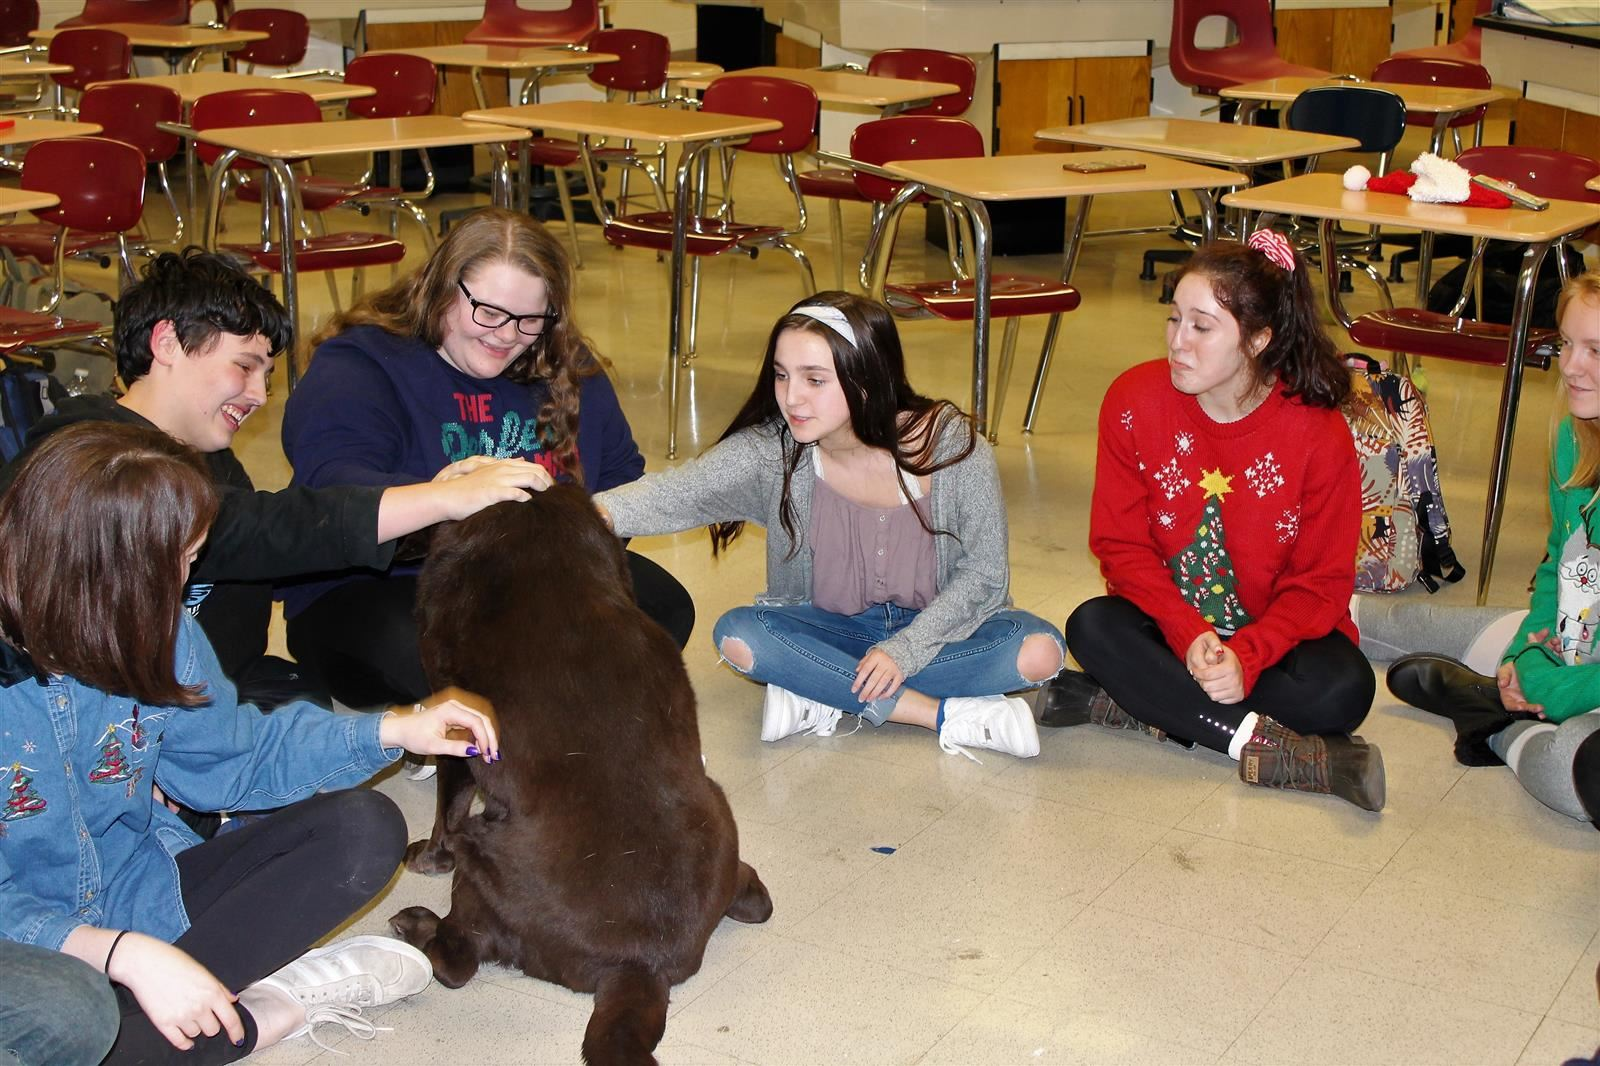 Students sitting in a circle with a dog during a class.